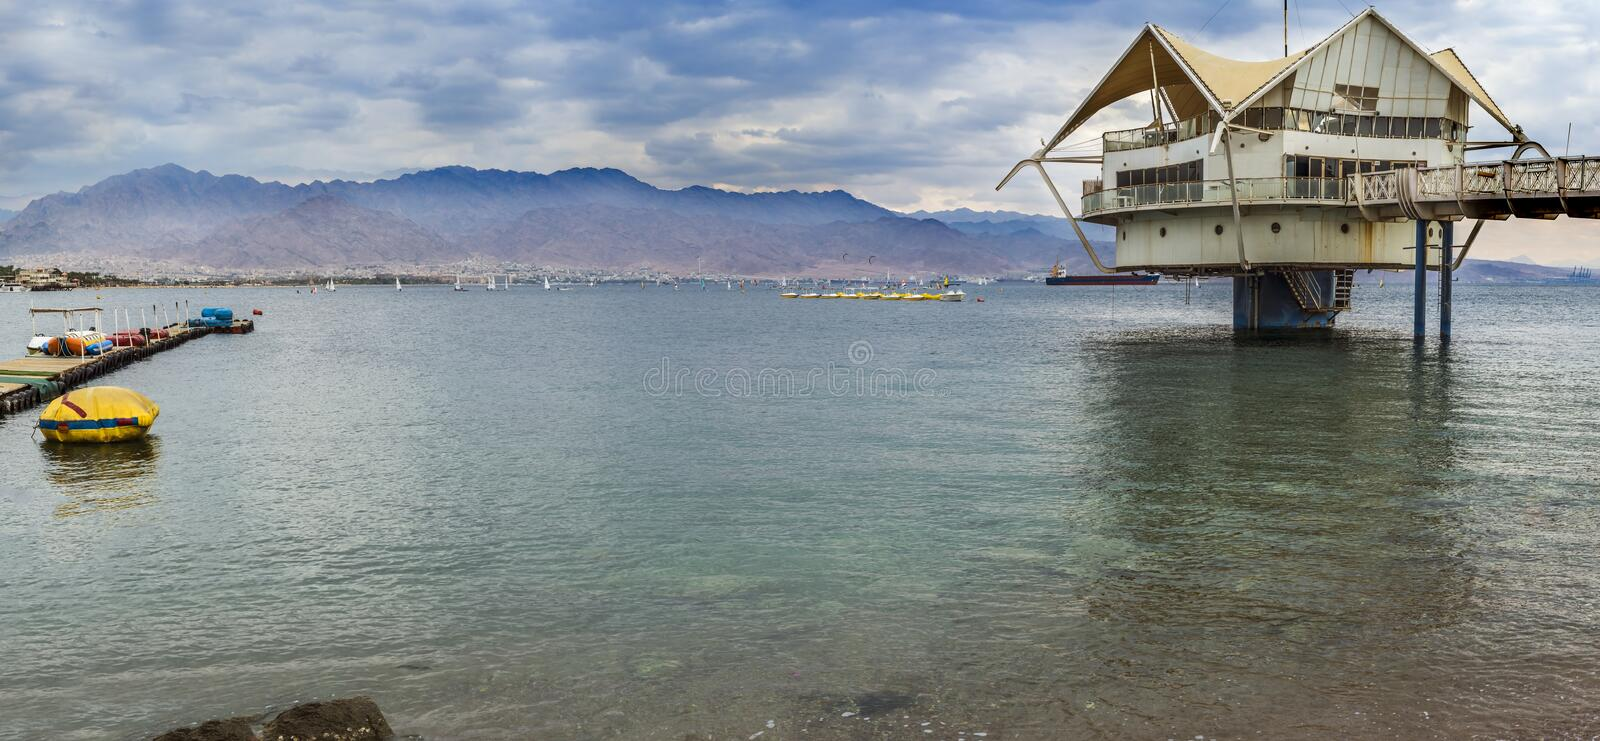 View at the Aqaba Gulf from Eilat, Israel. Eilat is a famous Israeli city with beautiful beaches and resort hotels packed with thousands of vacationers and royalty free stock images